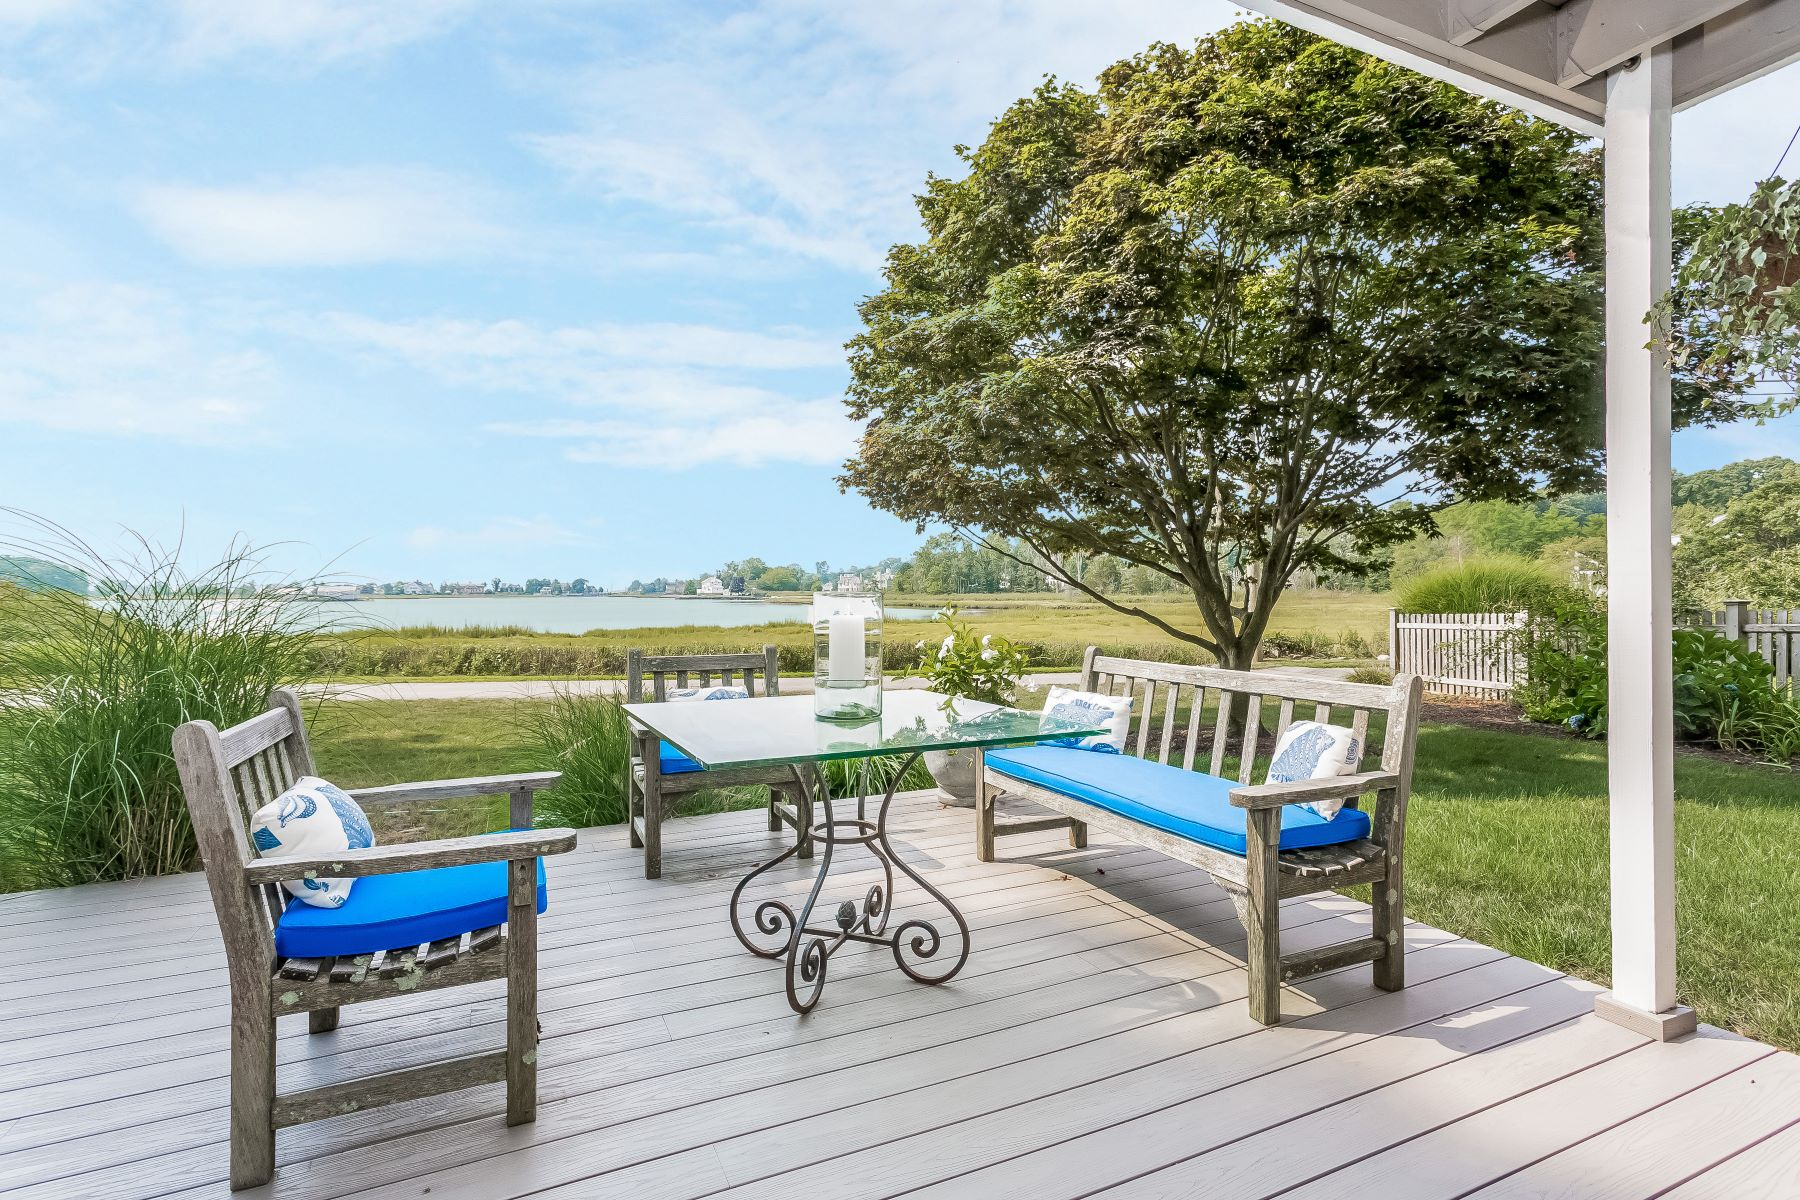 Maison unifamiliale pour l Vente à Panaromic Water Views 94 Grove Point Road Westport, Connecticut, 06880 États-Unis